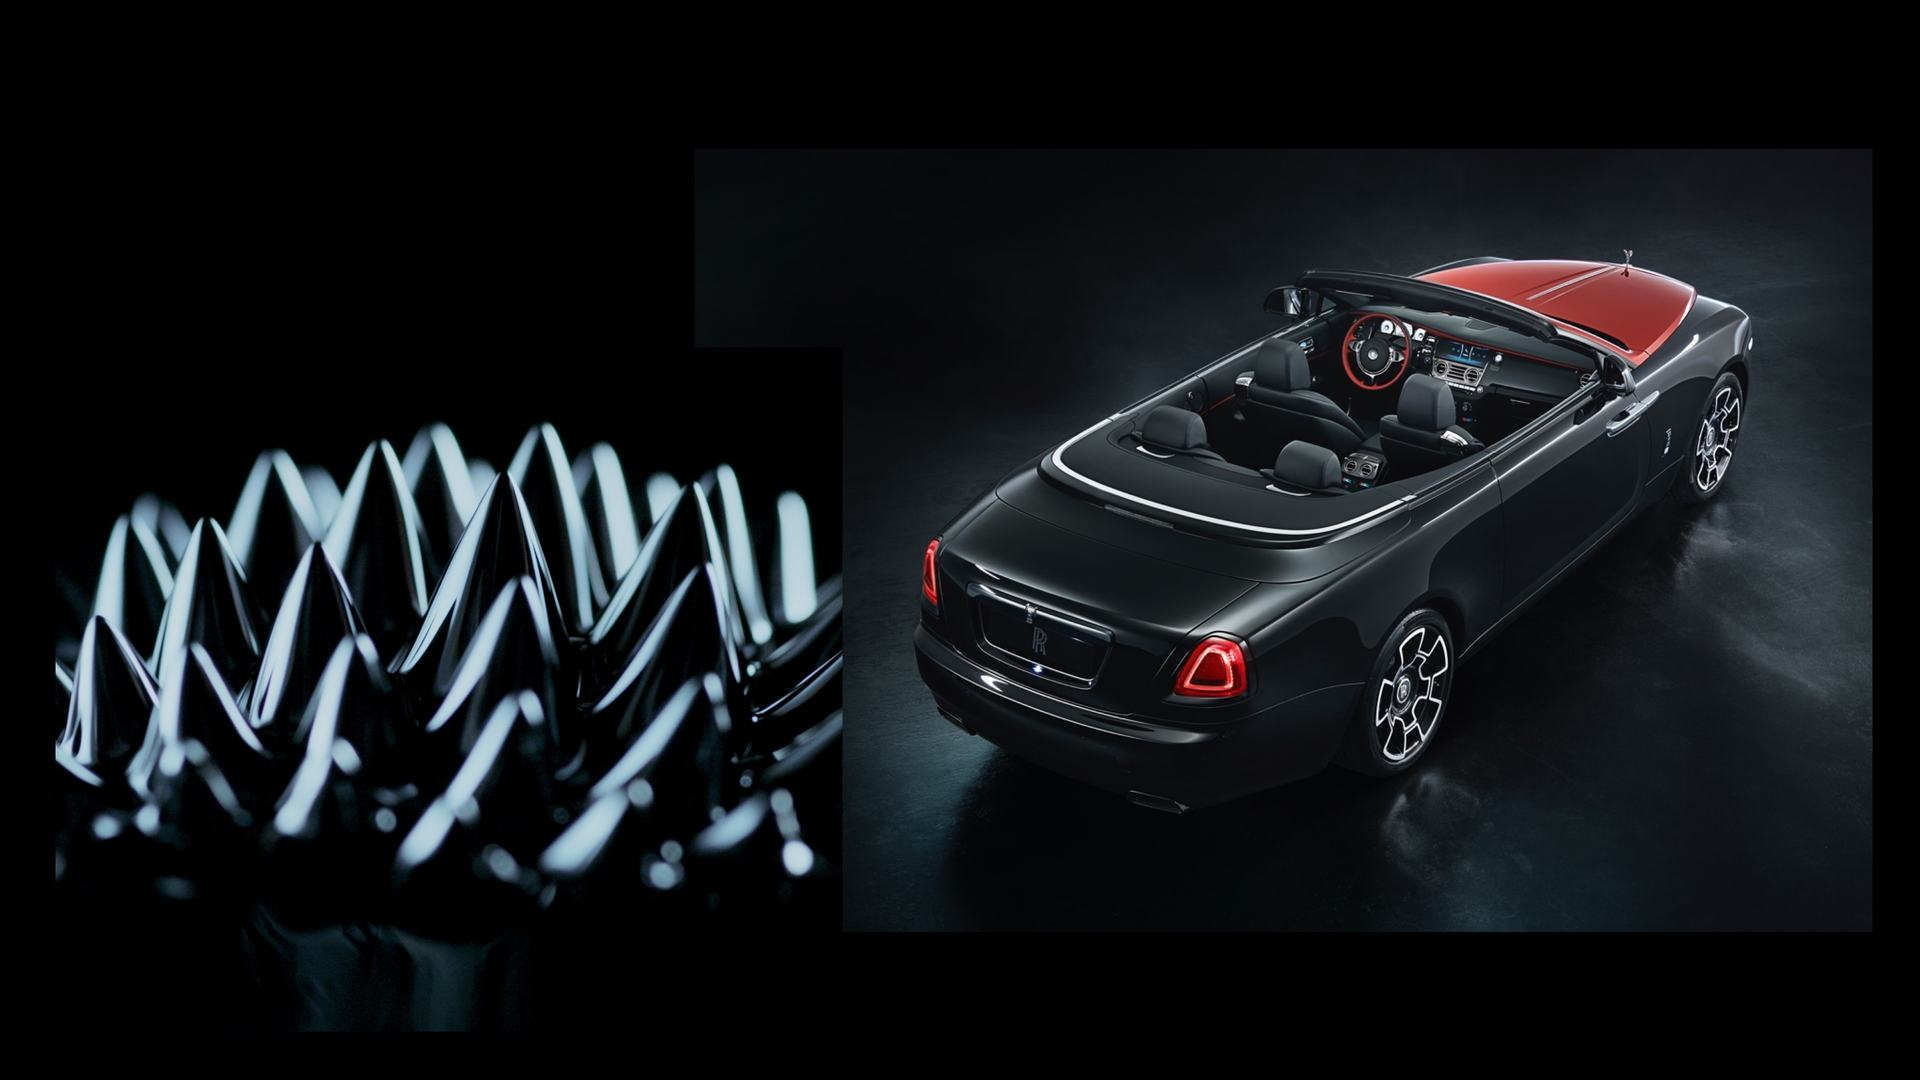 Two images combined here, one showing some texture featured in the 'What is Black Badge' video while the other a top rear view of a Rolls-Royce Black Badge Dawn with the roof down.